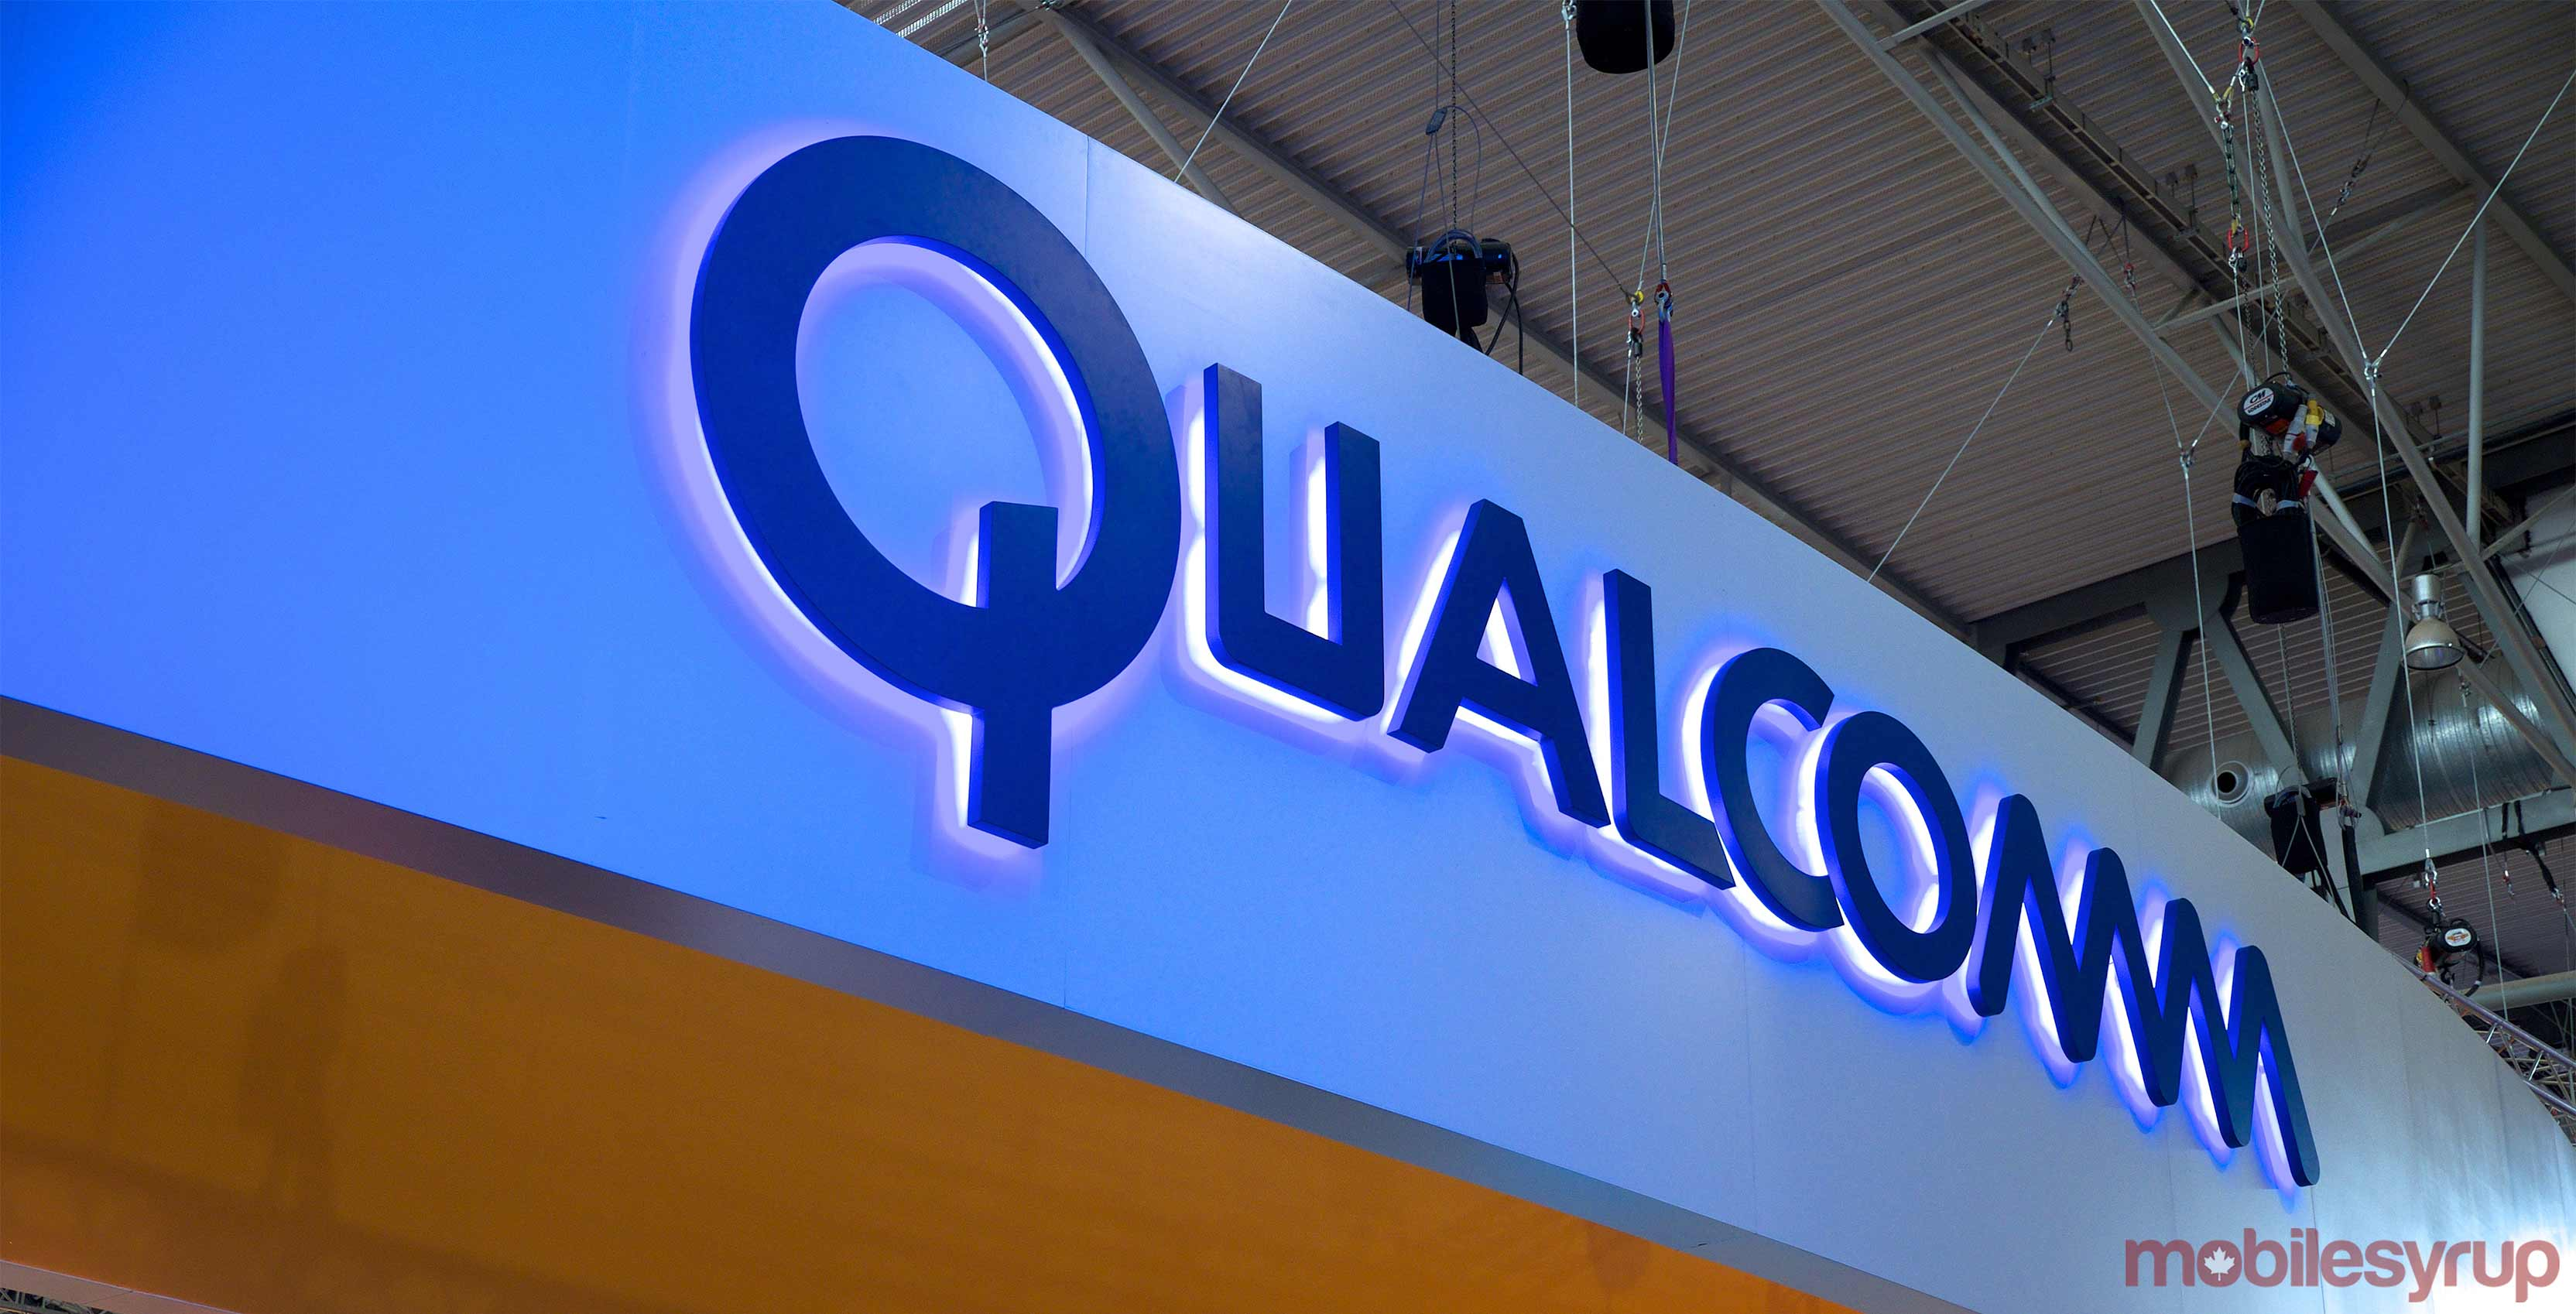 Qualcomm says it invented Apple's innovation